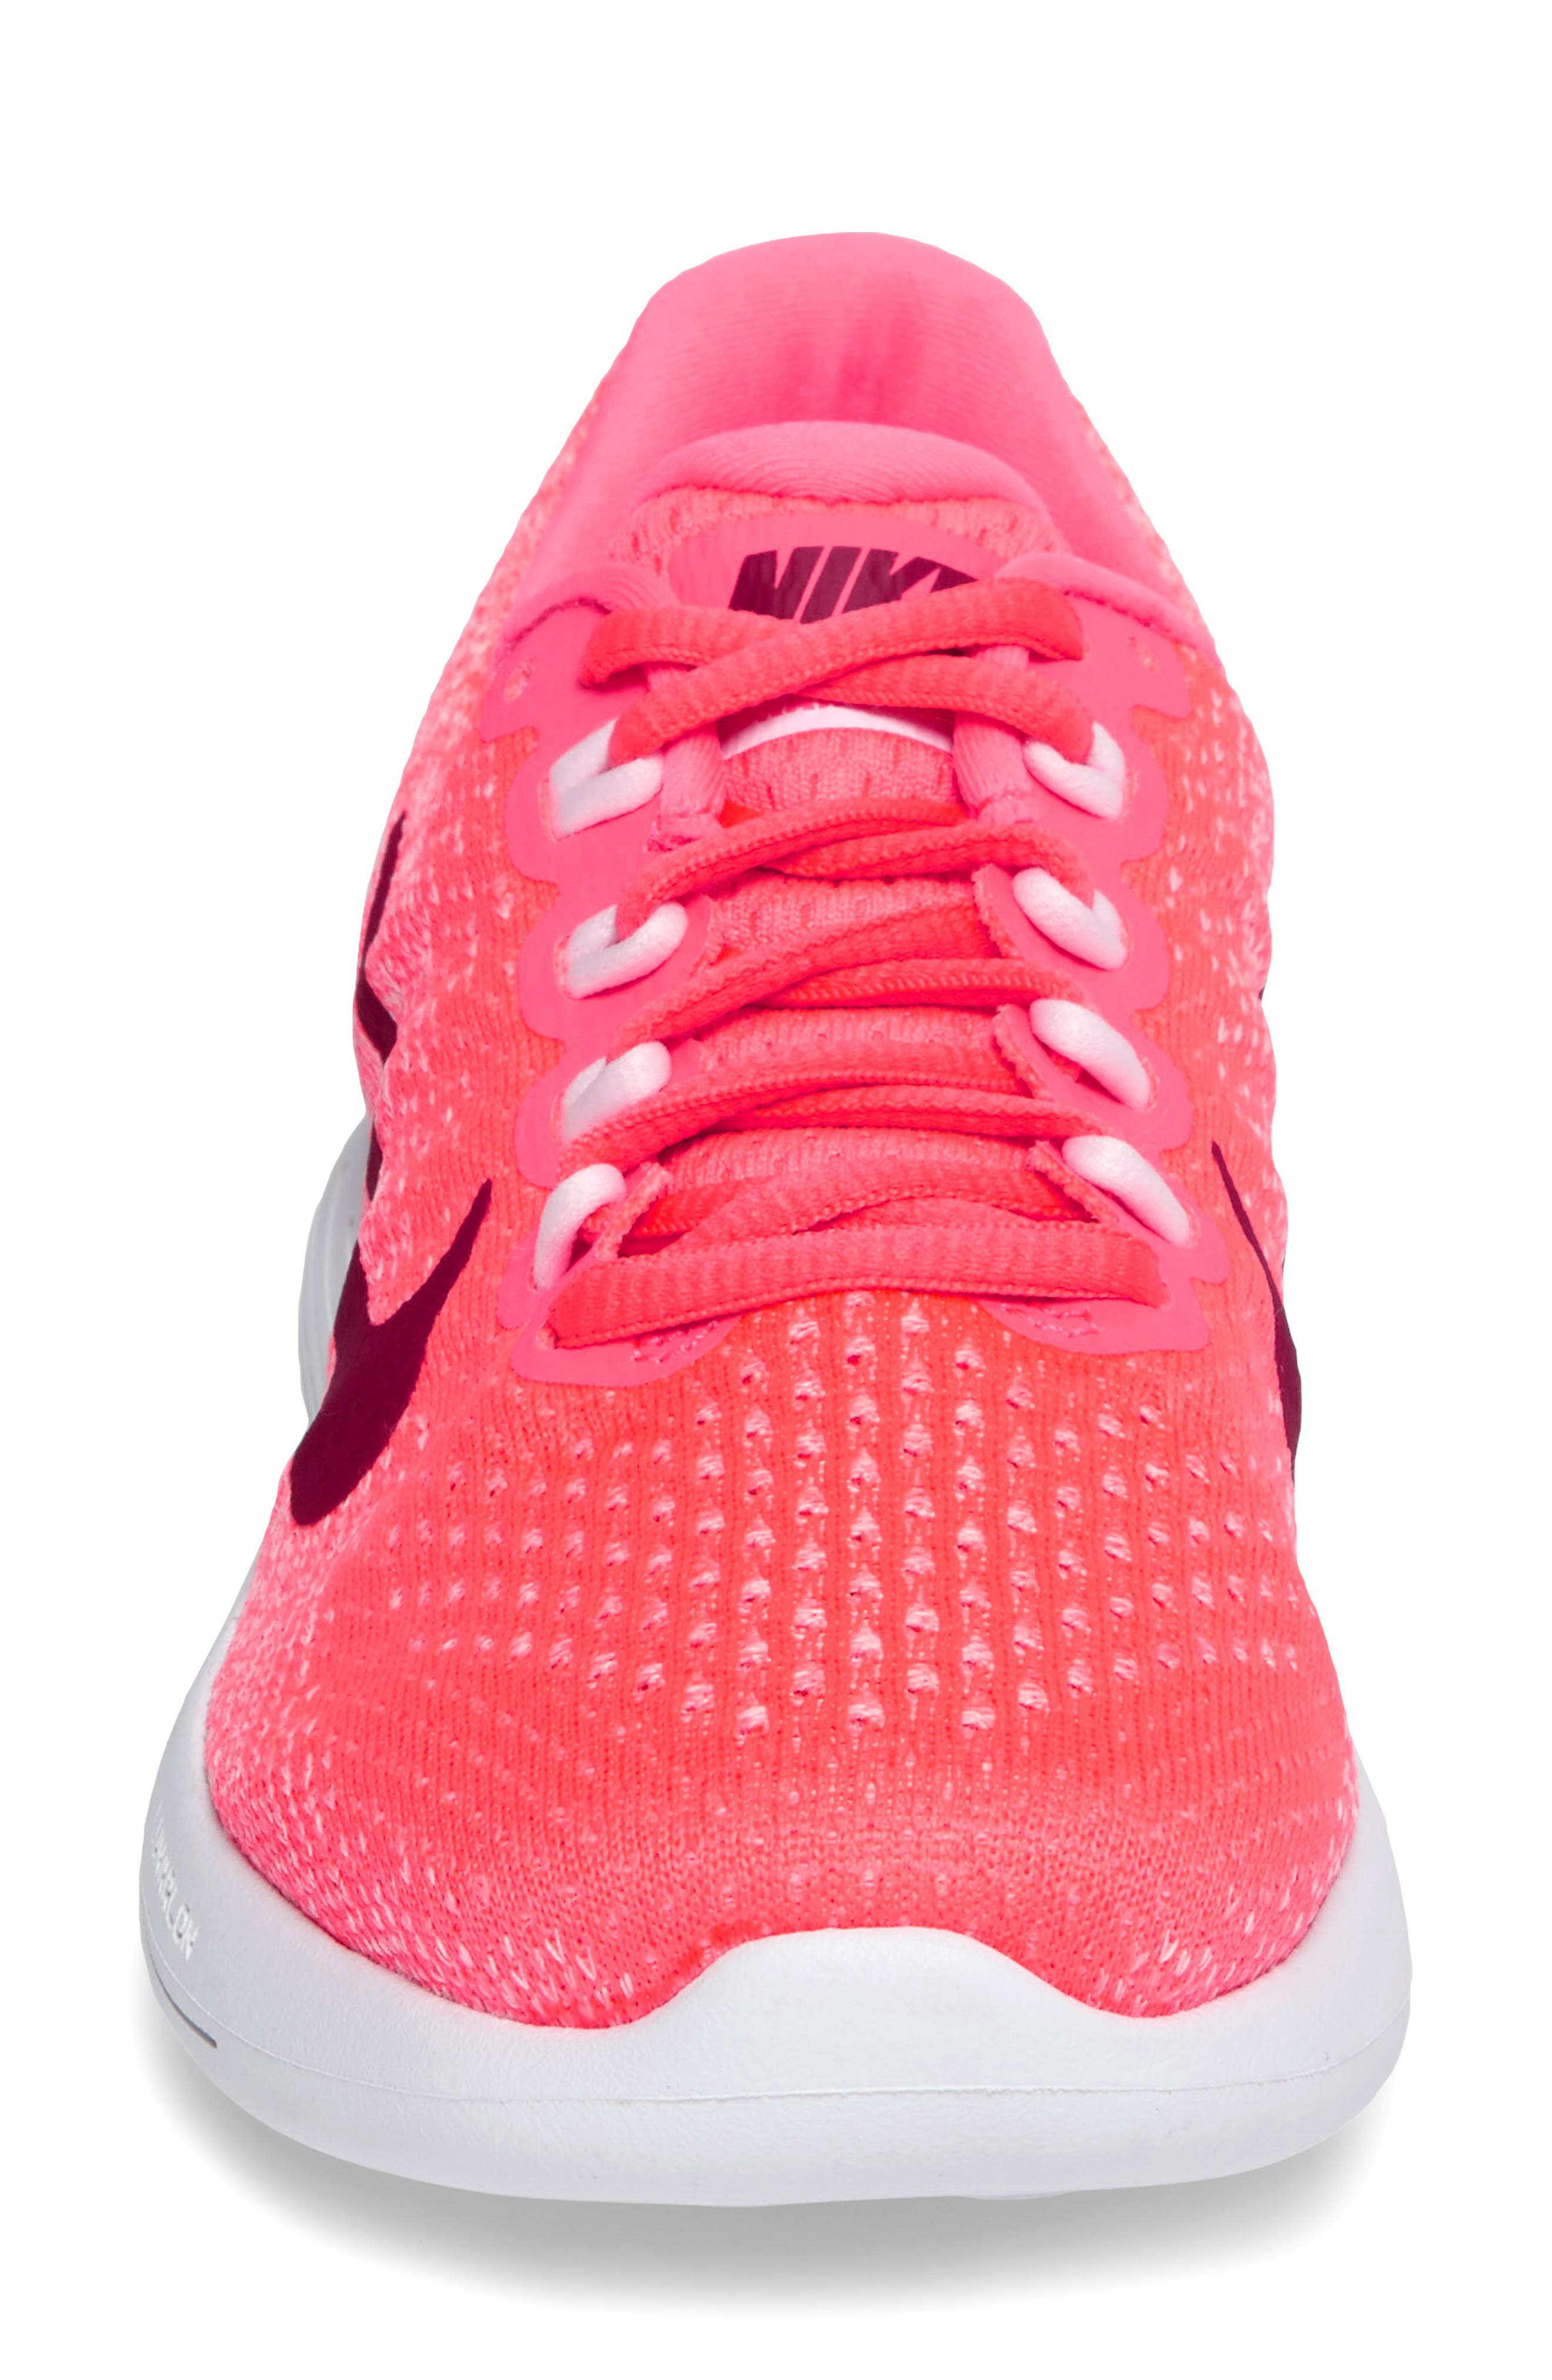 LunarGlide 9 Running Shoe,                             Alternate thumbnail 3, color,                             Hot Punch/ Noble Red/ Arctic